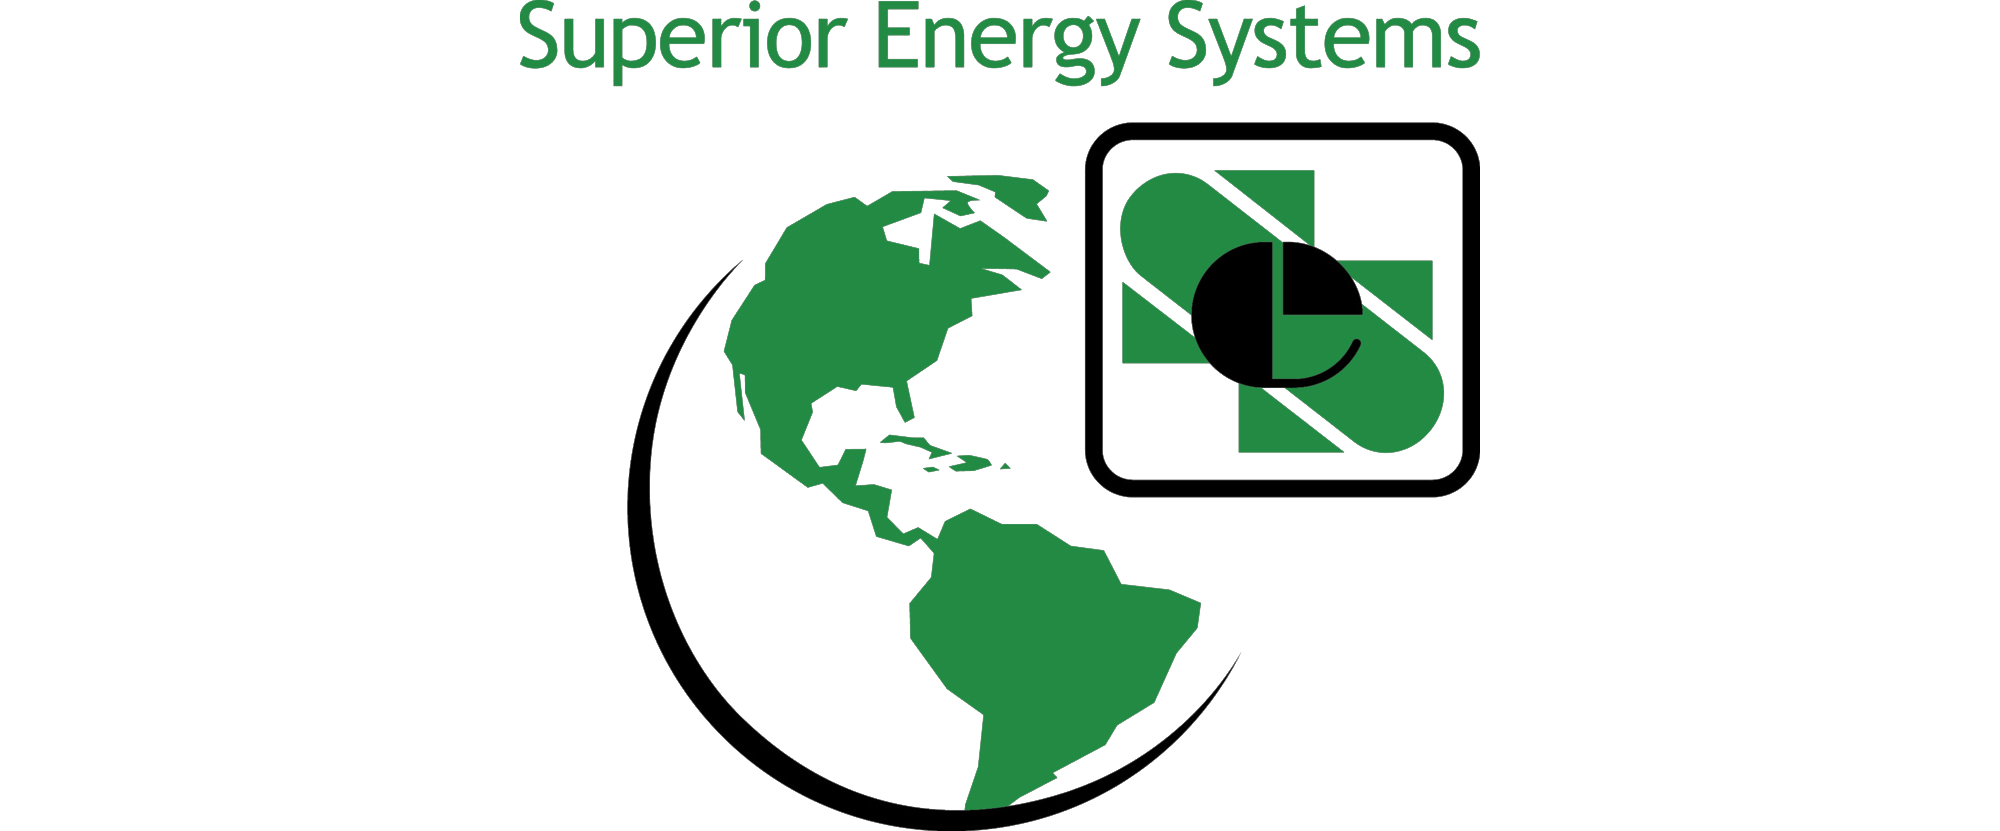 Superioir Energy Systems